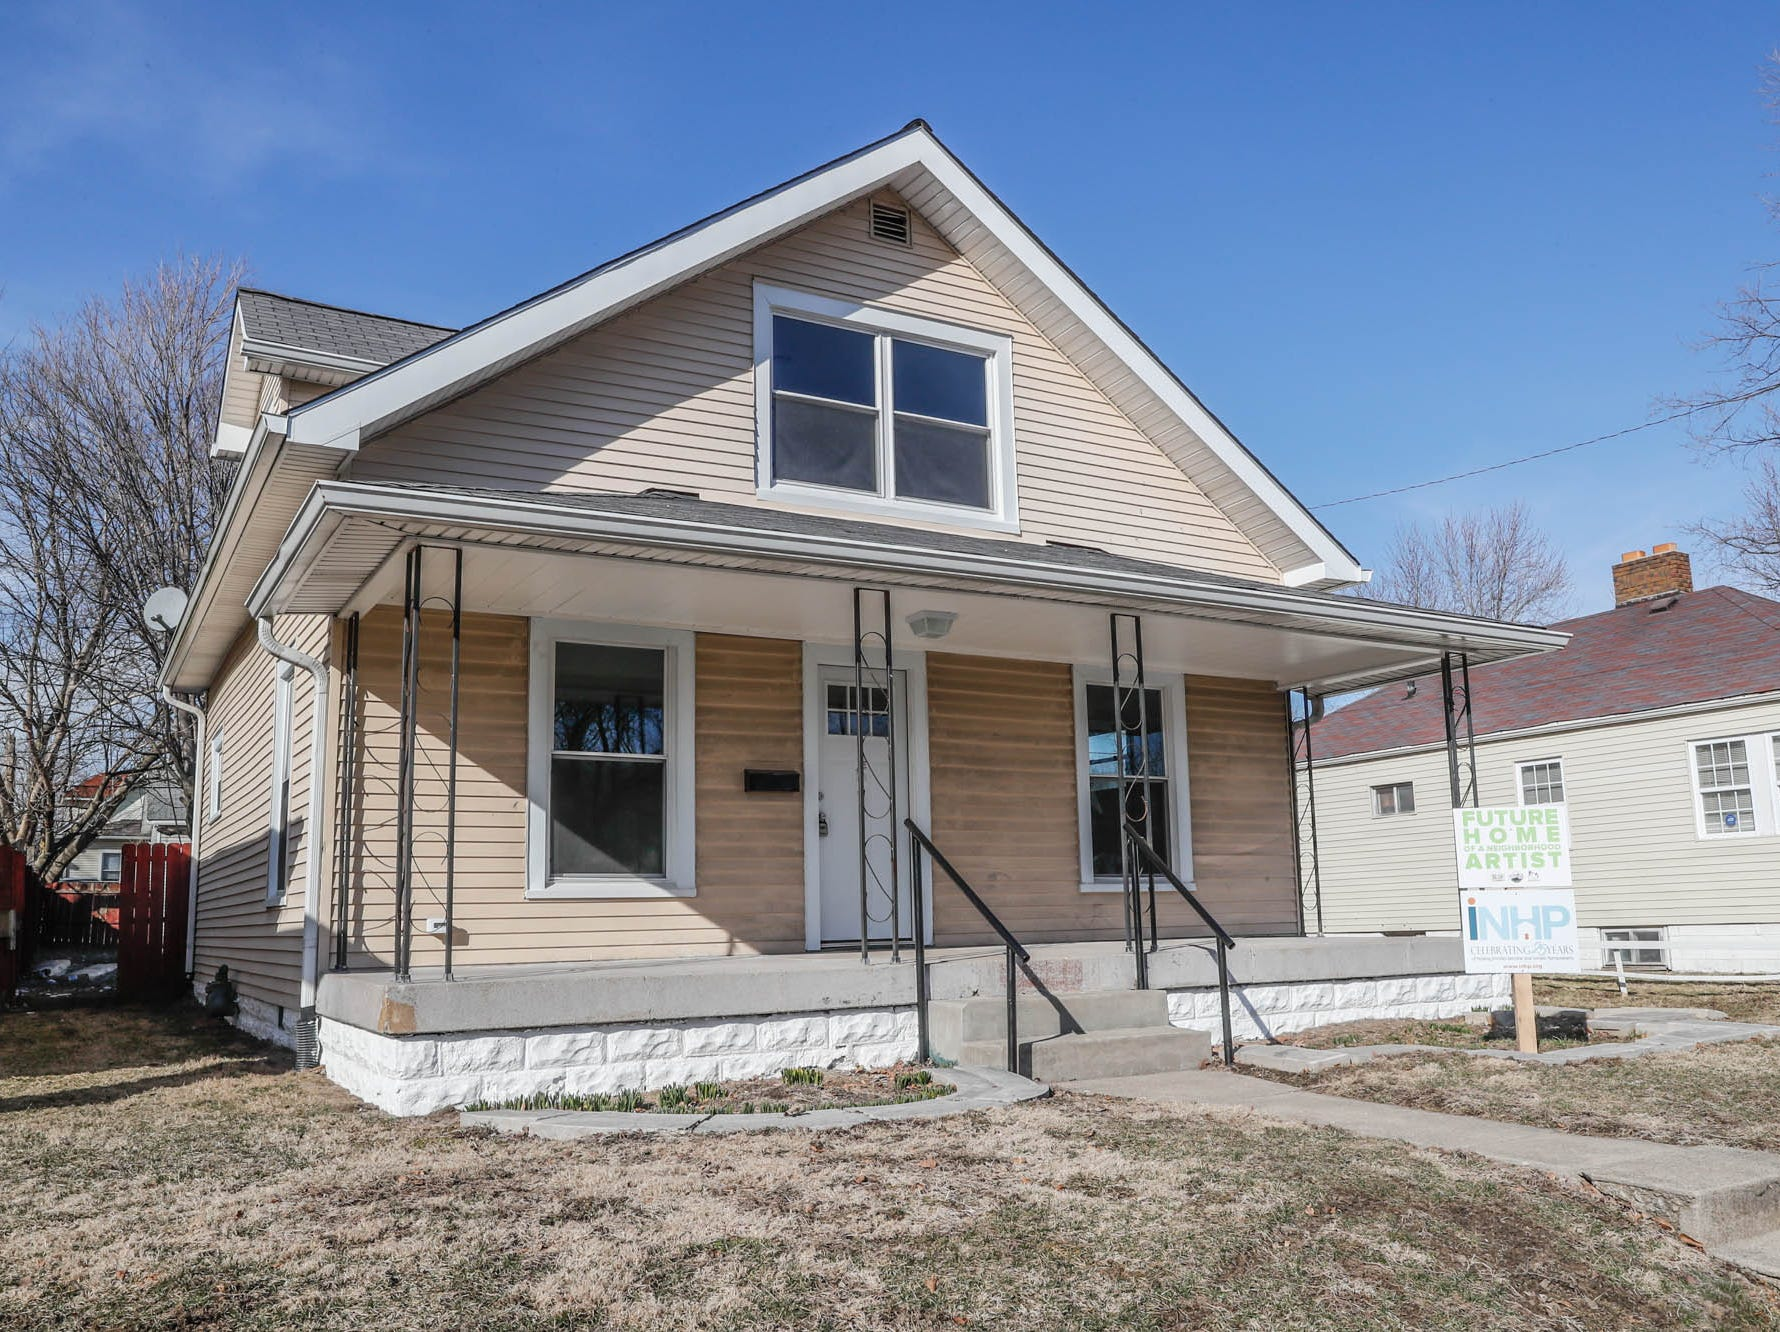 A newly remodeled home on Cruft St., affectionally known as the 'tan house' is part of the Big Car Collaborative and Riley Area Development affordable artist home ownership program on the near south side of Indianapolis on Wednesday, March 6, 2019. The home will be painted. The goal of the Artist and Public Life Residency (APLR), will be to provide artists with home ownership while they work and collaborate with the greater community.